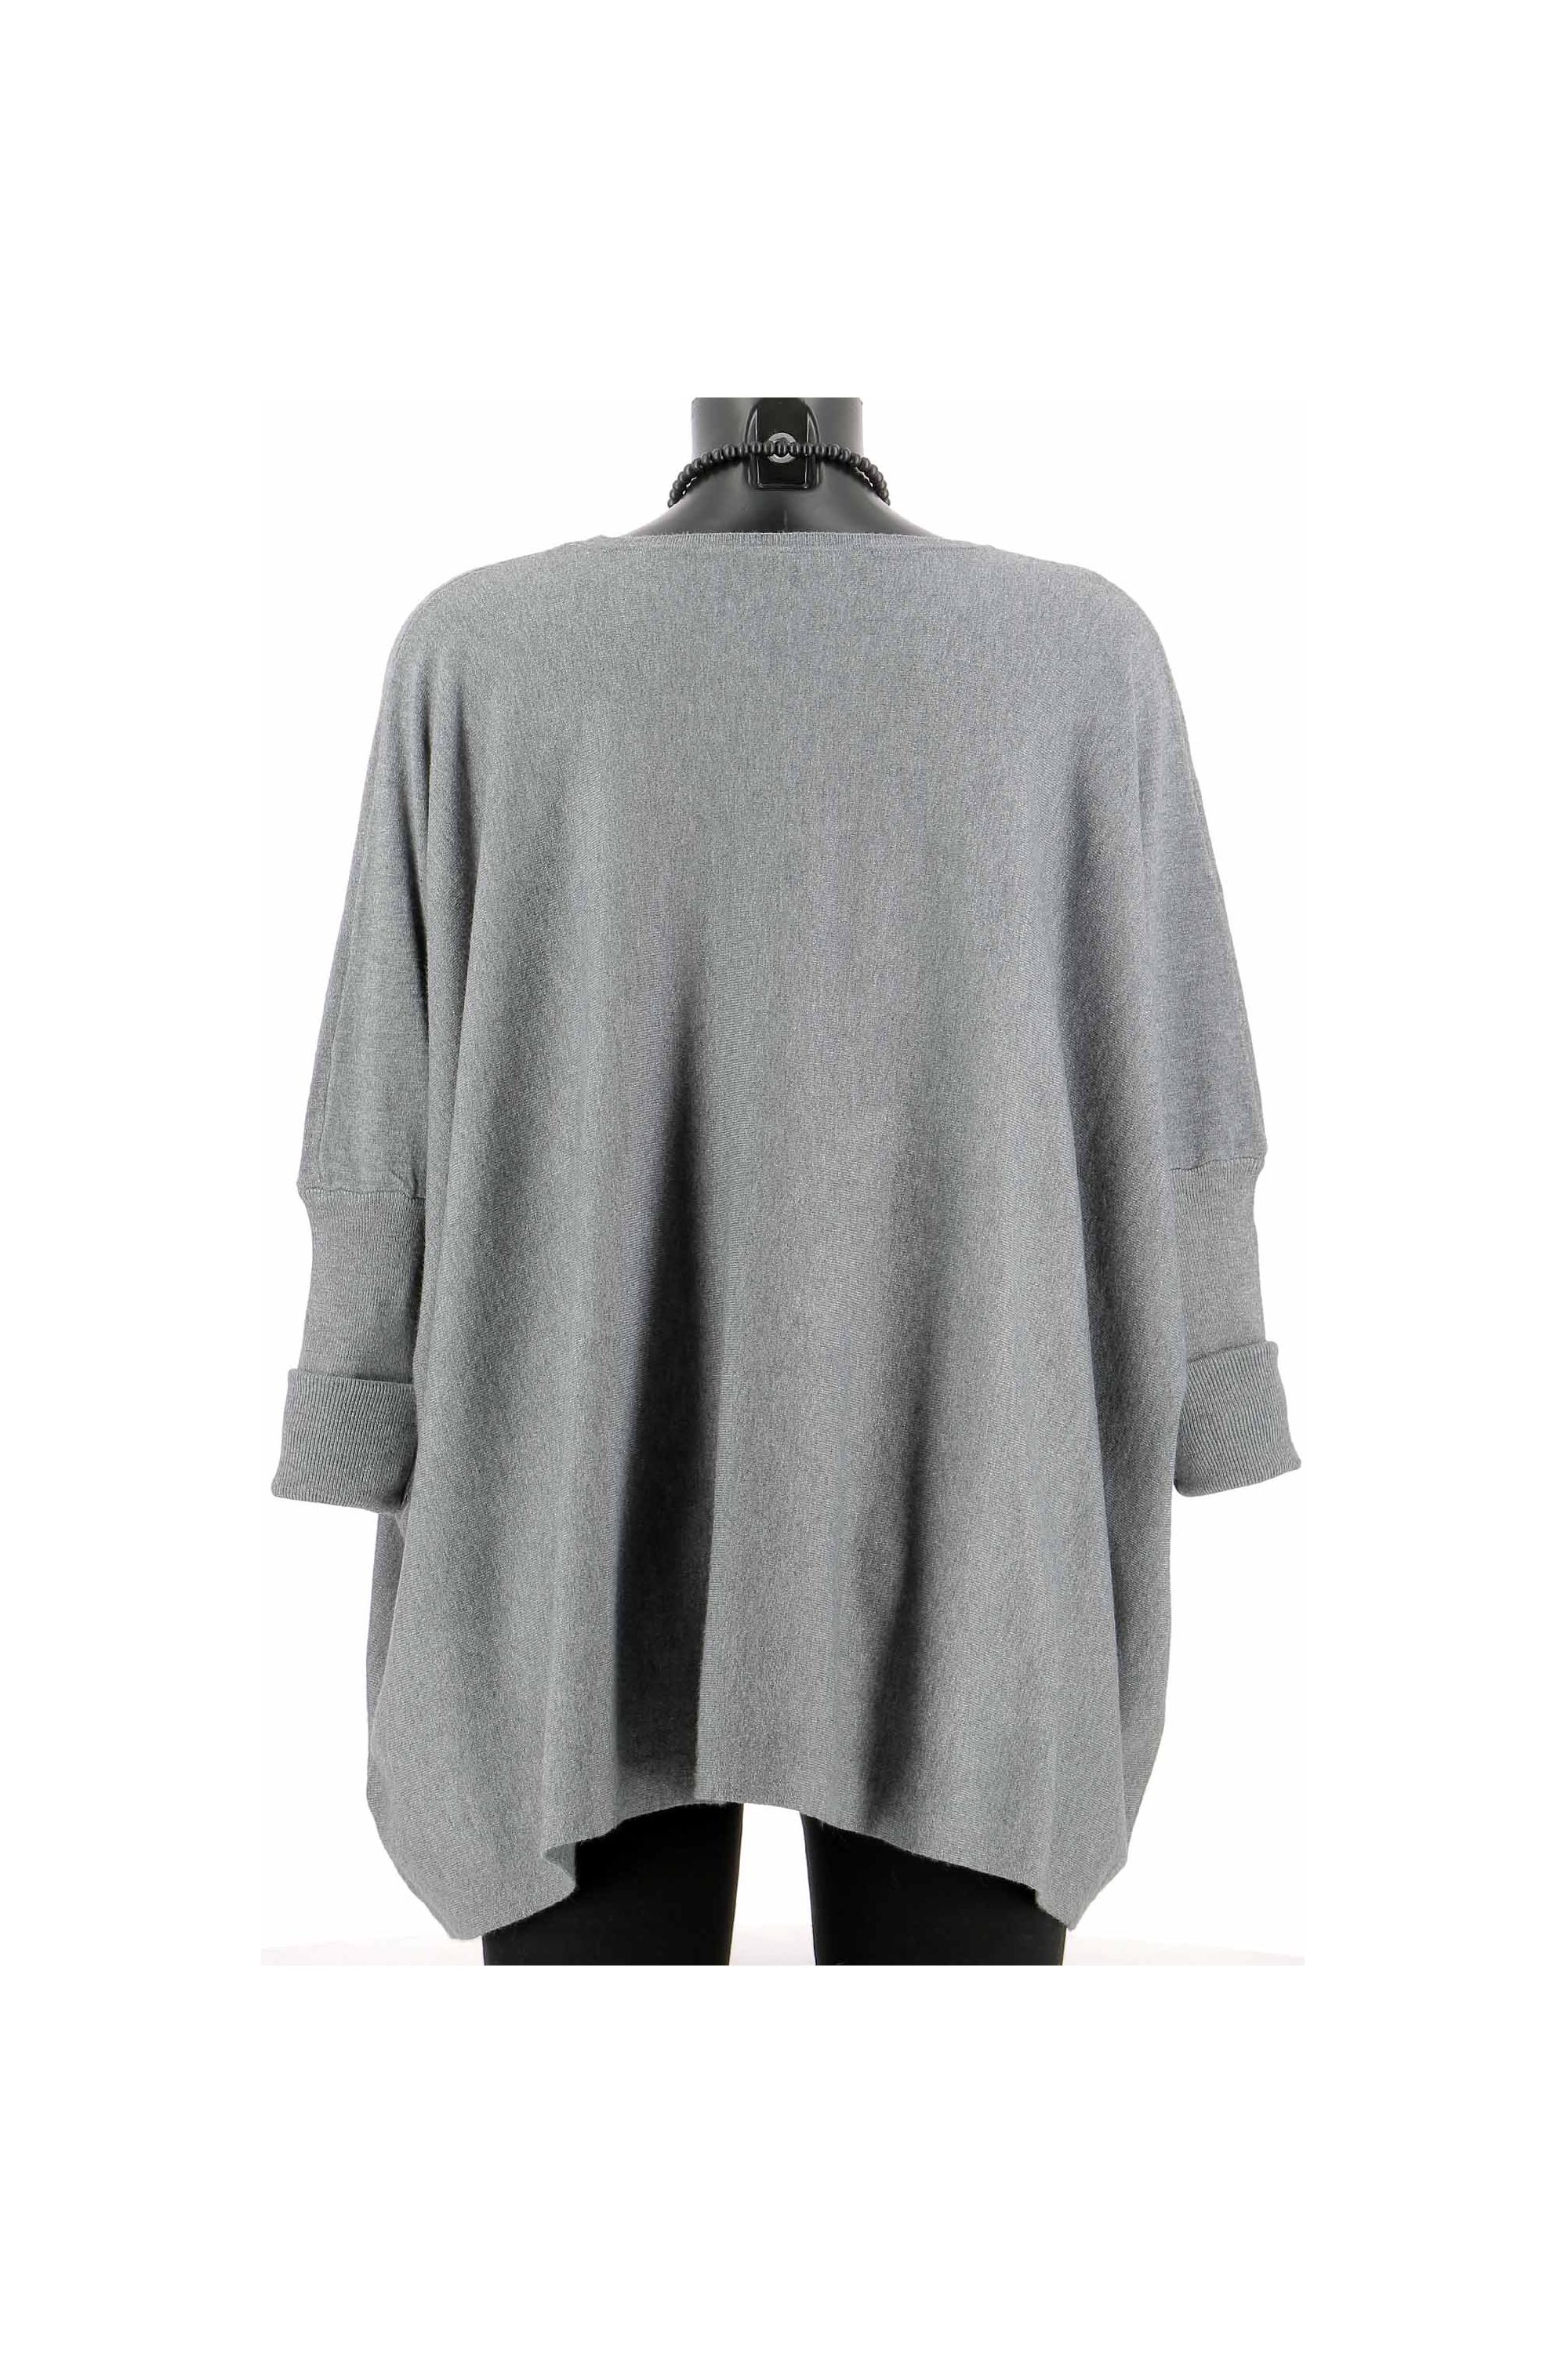 Pull cachemire femme taille 52